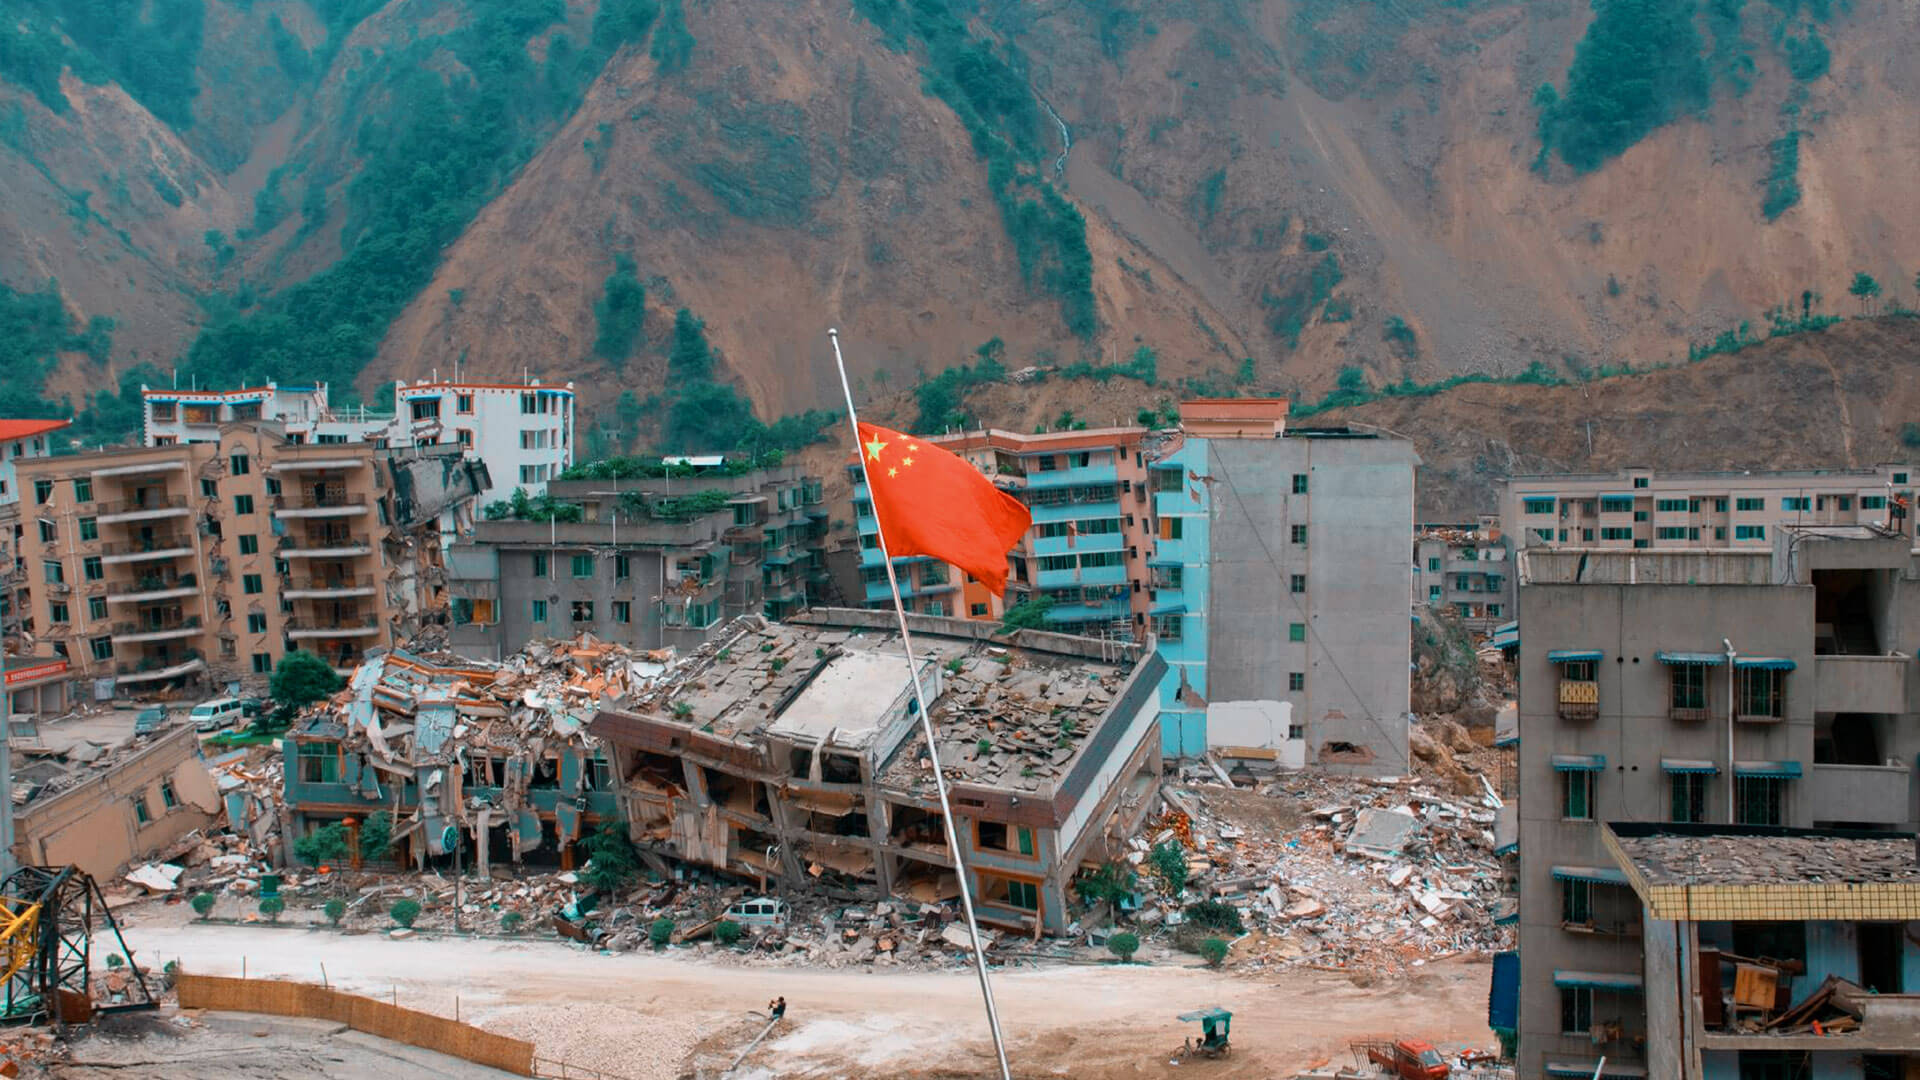 terremoto-china-2008